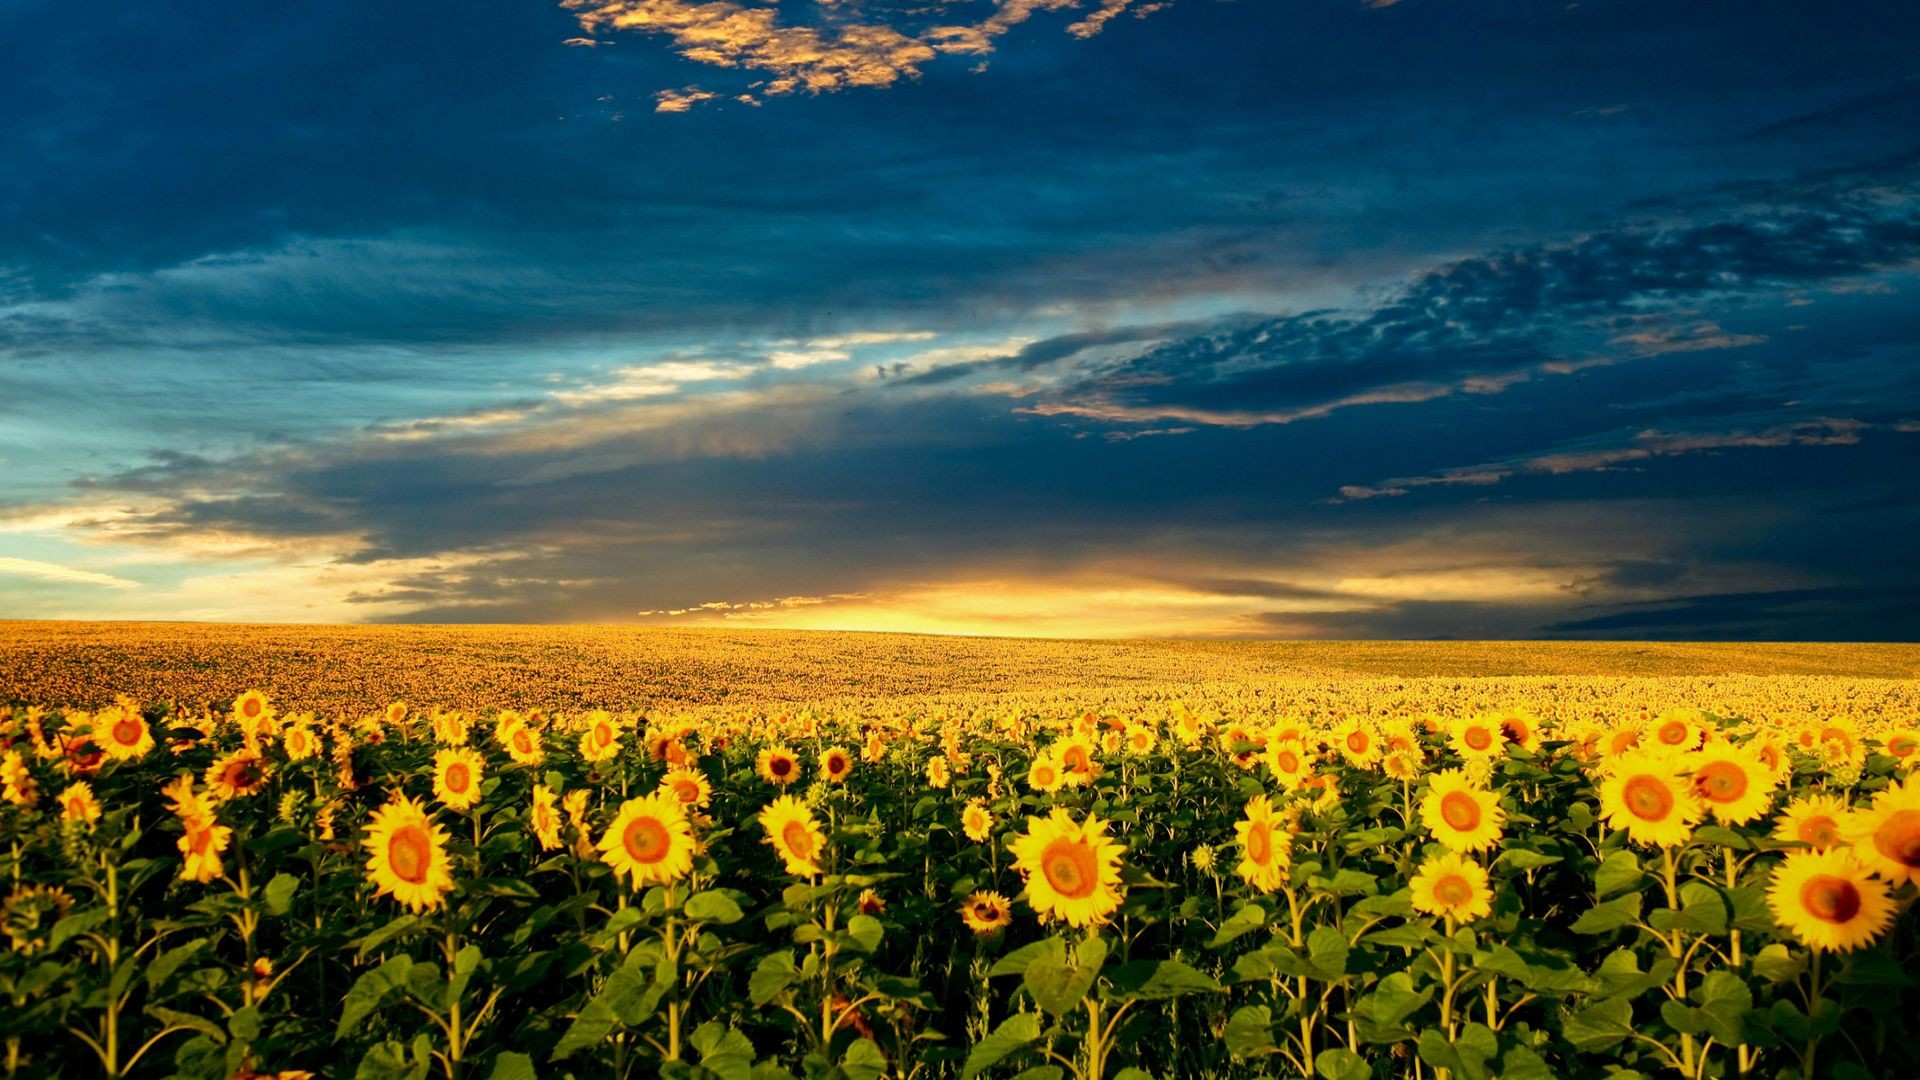 sunflower wallpapers 72 images